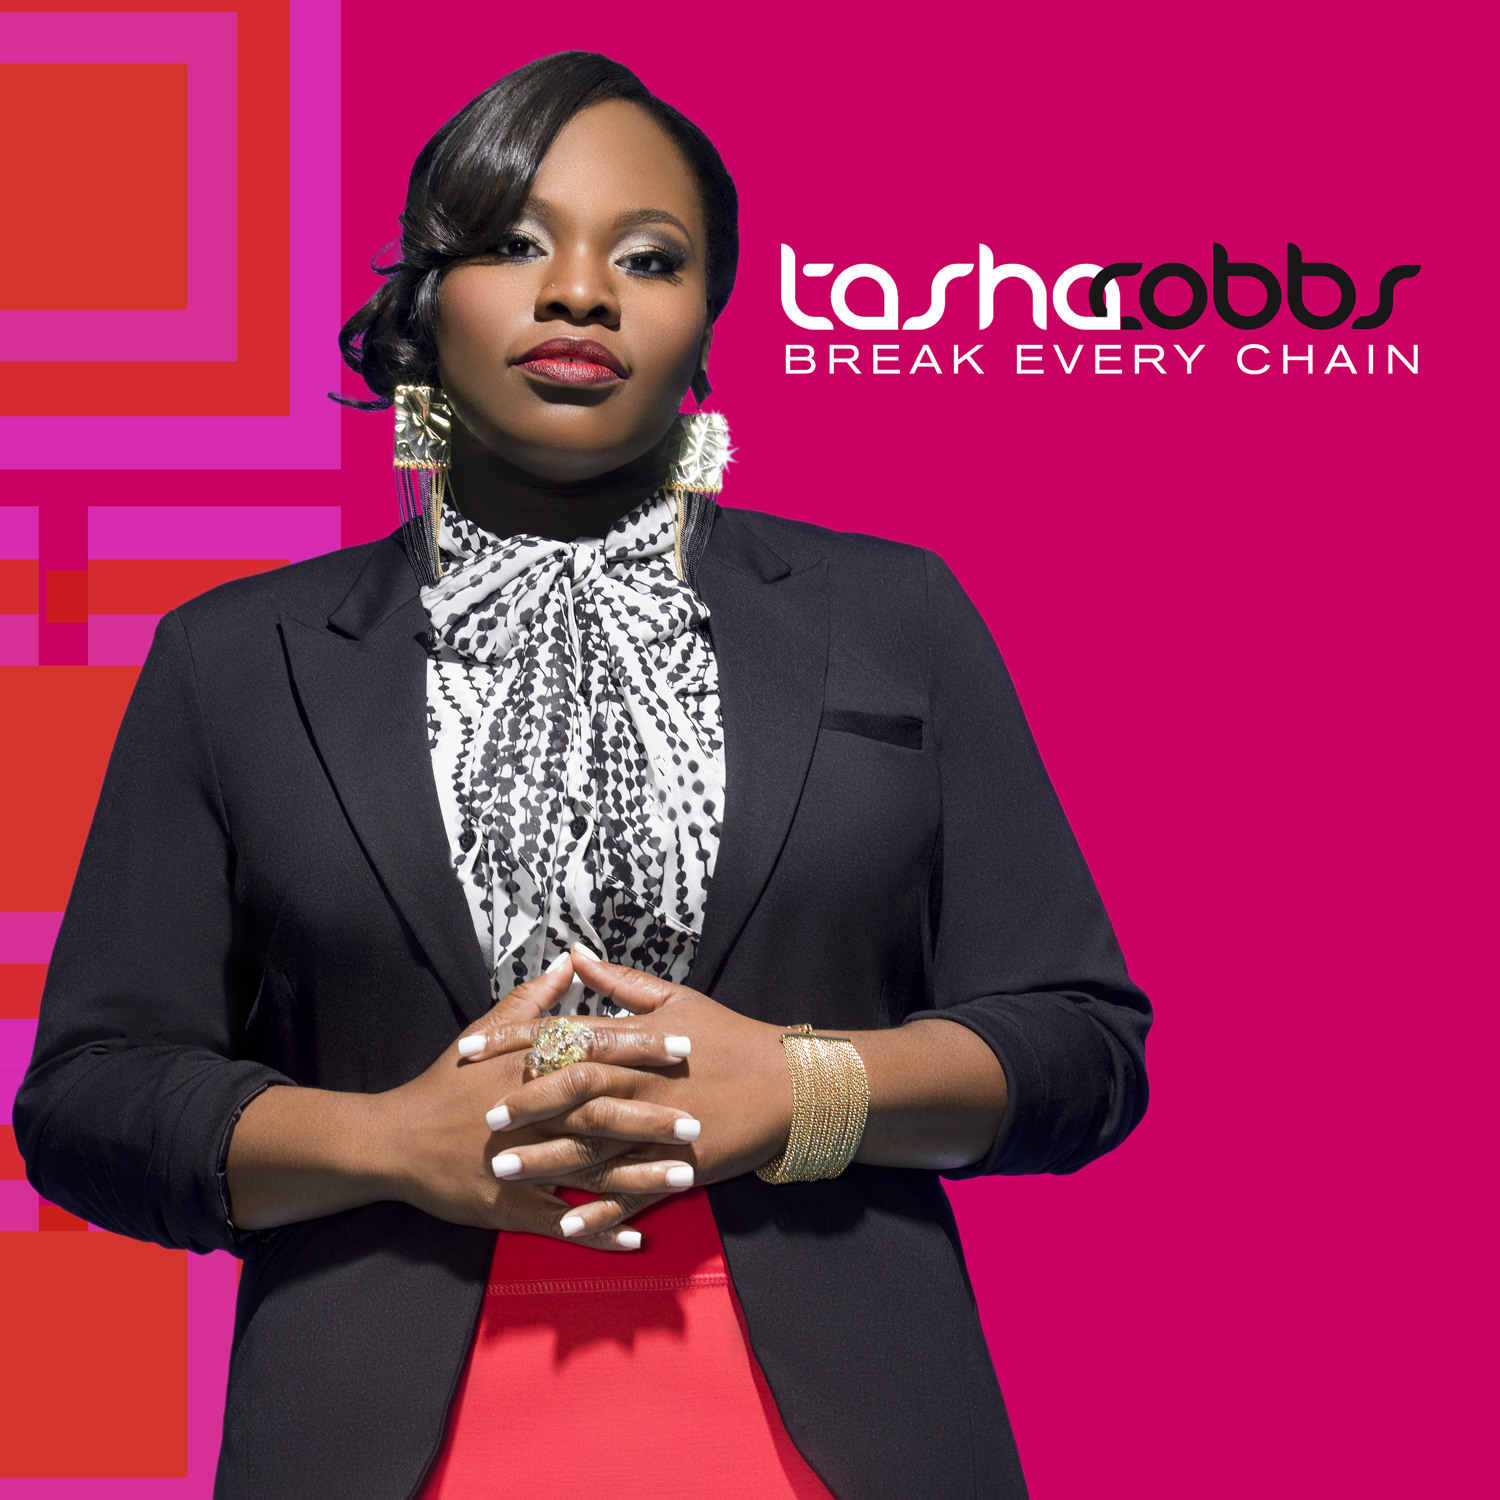 Tasha Cobbs -Break Every Chain Lyrics